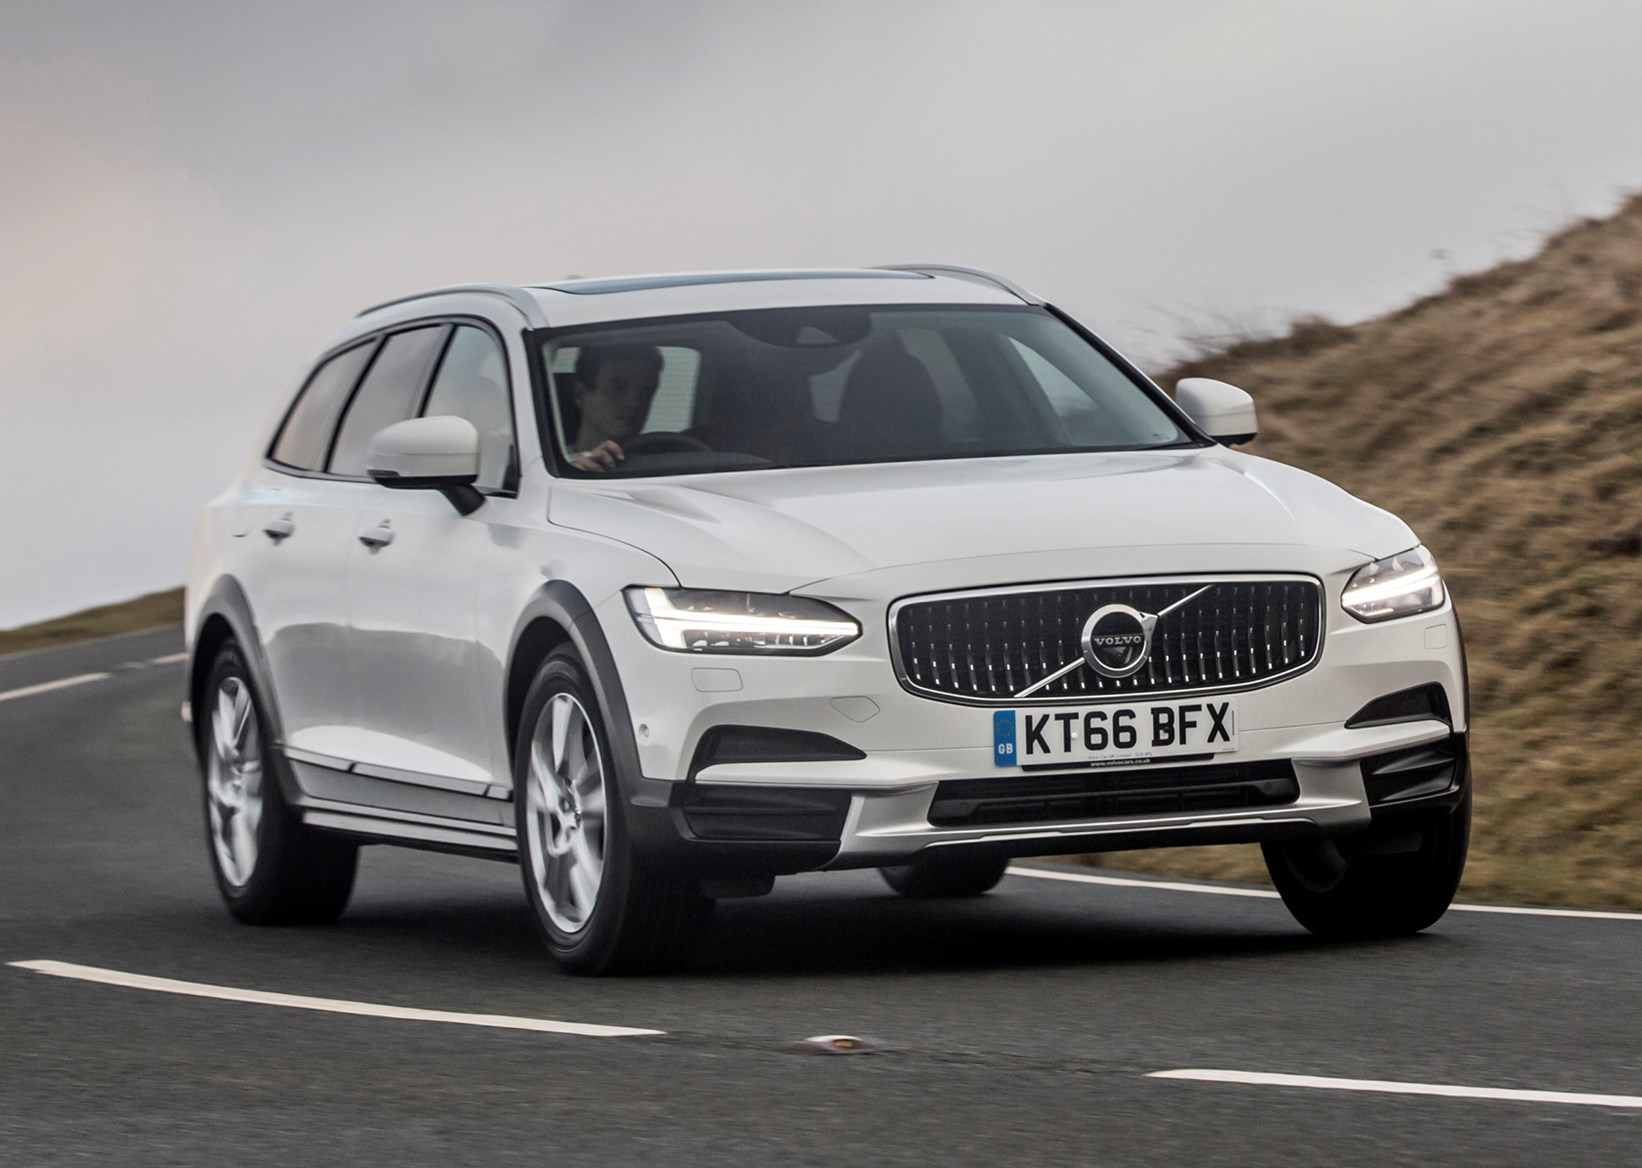 volvo v90 cross country review (2017 - ) | parkers